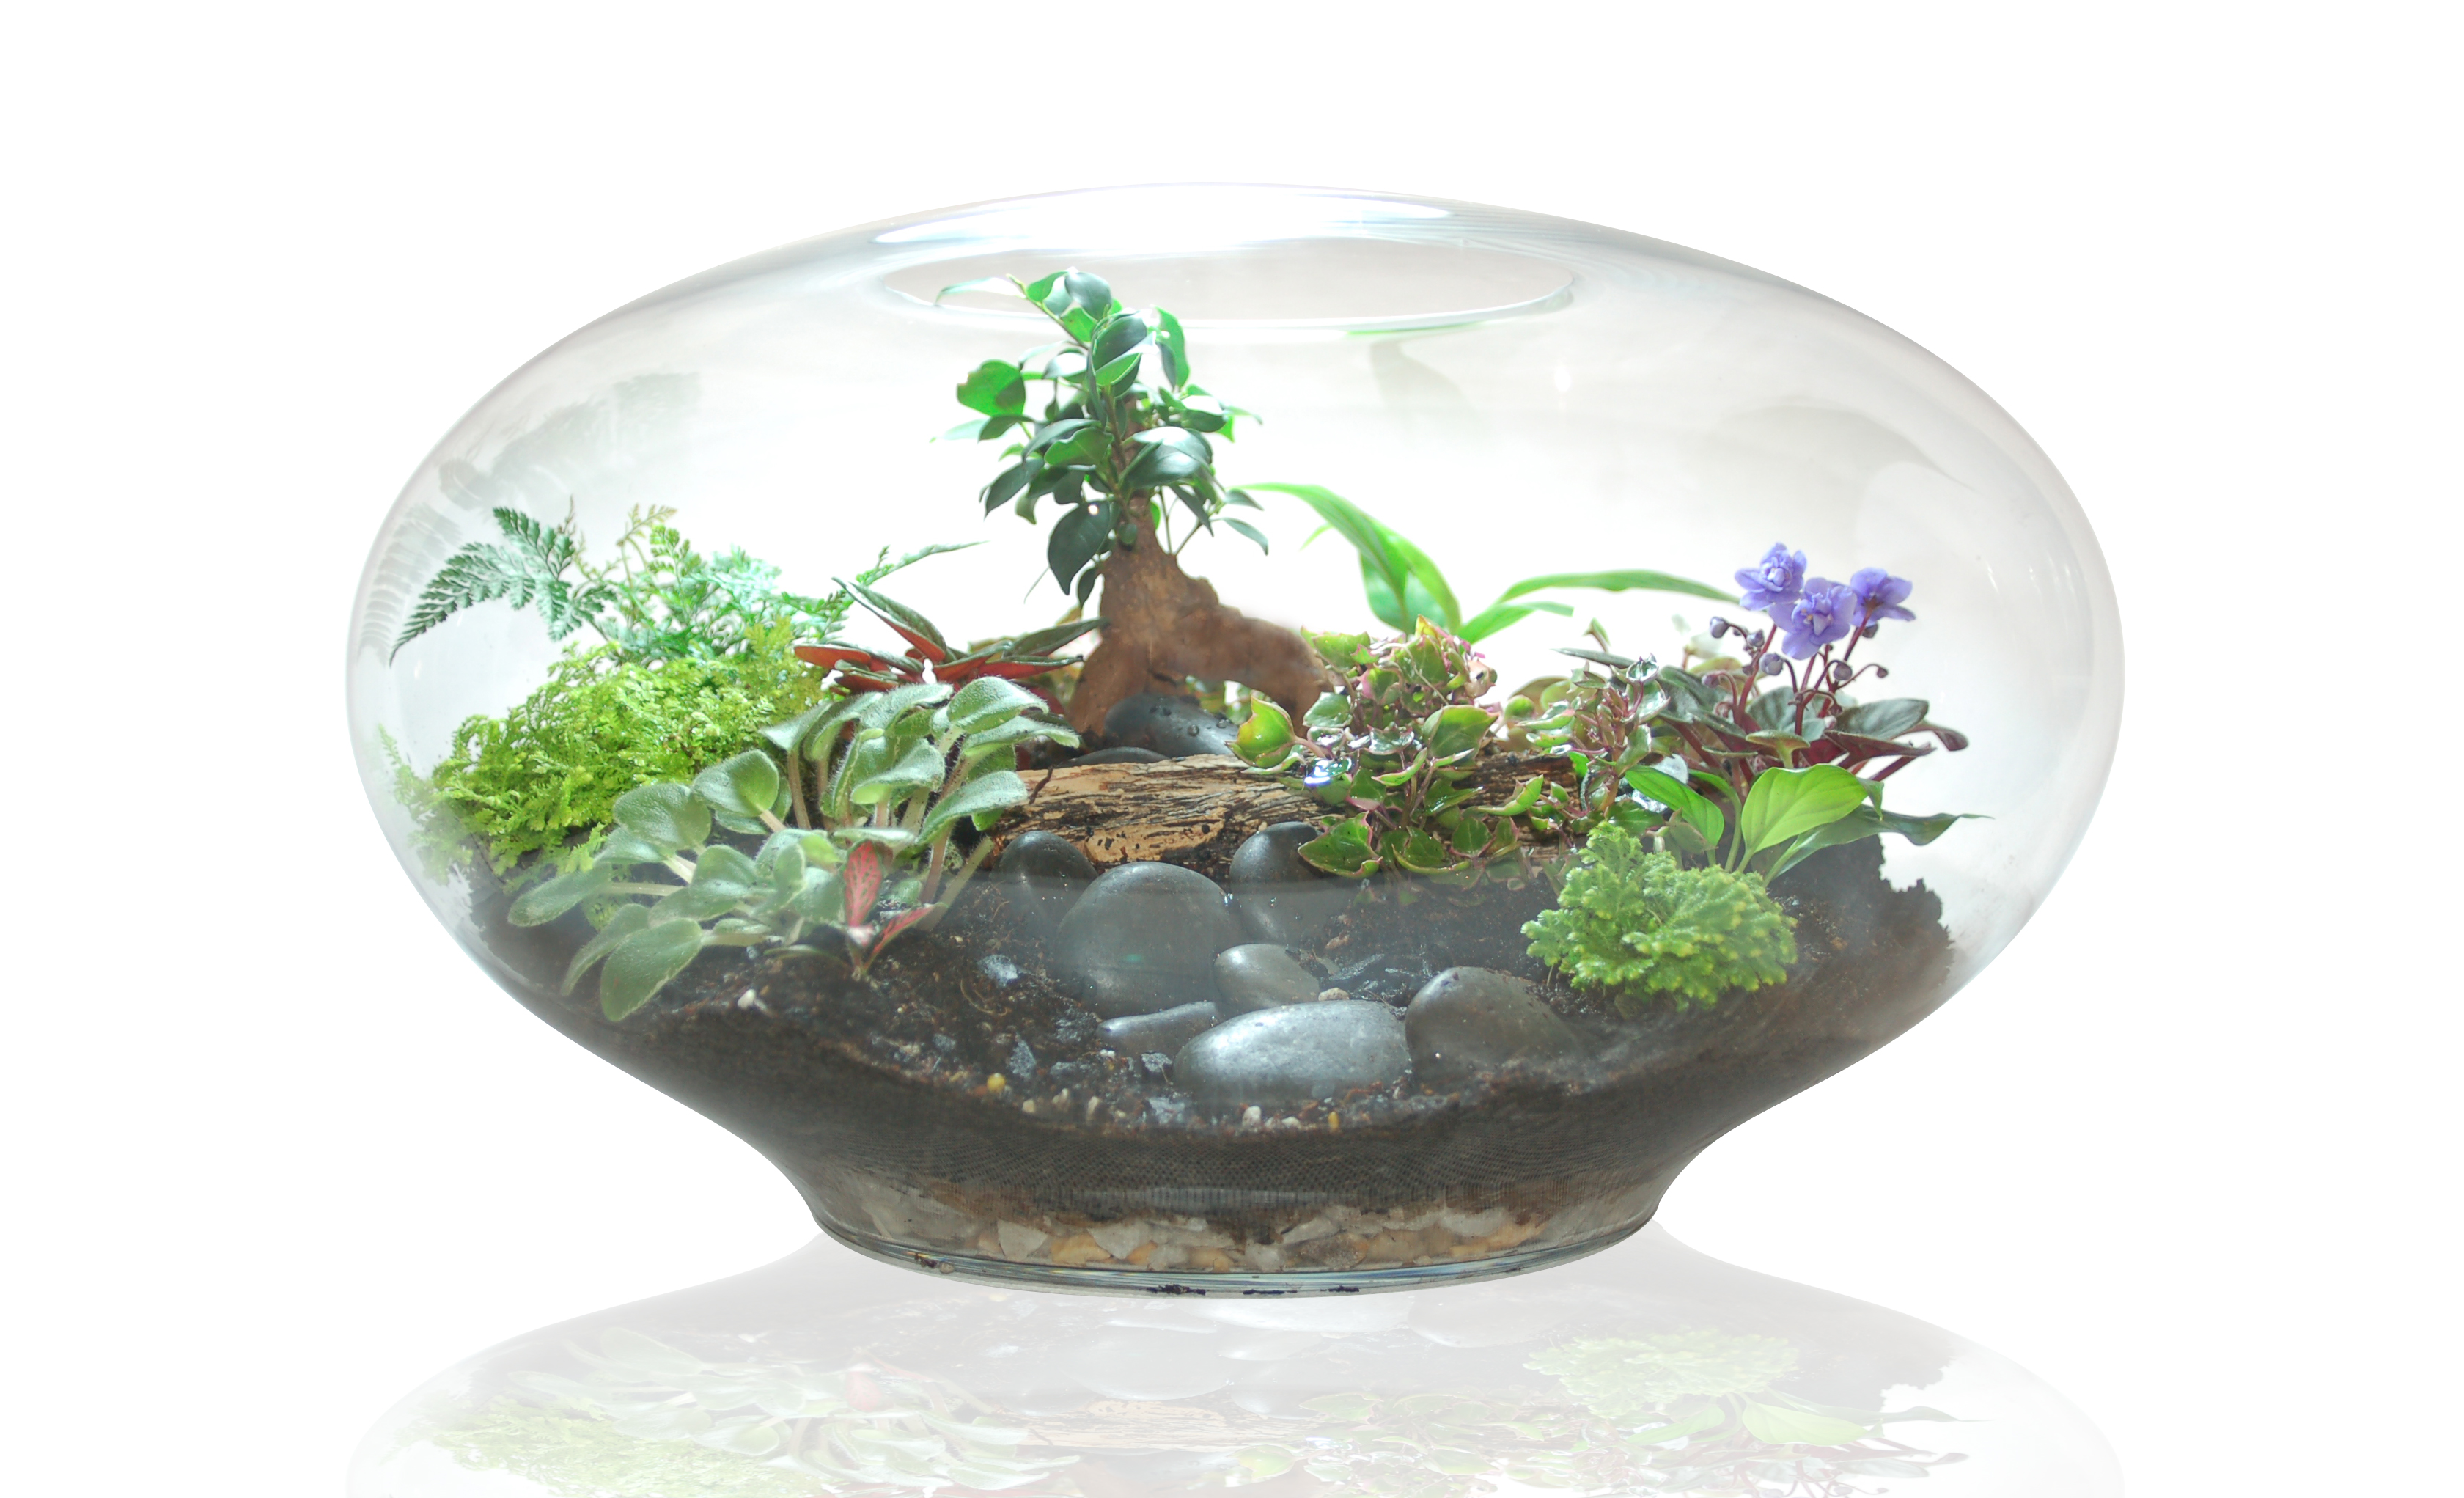 Giant imaginarium terrarium by Fleurieu Gifts